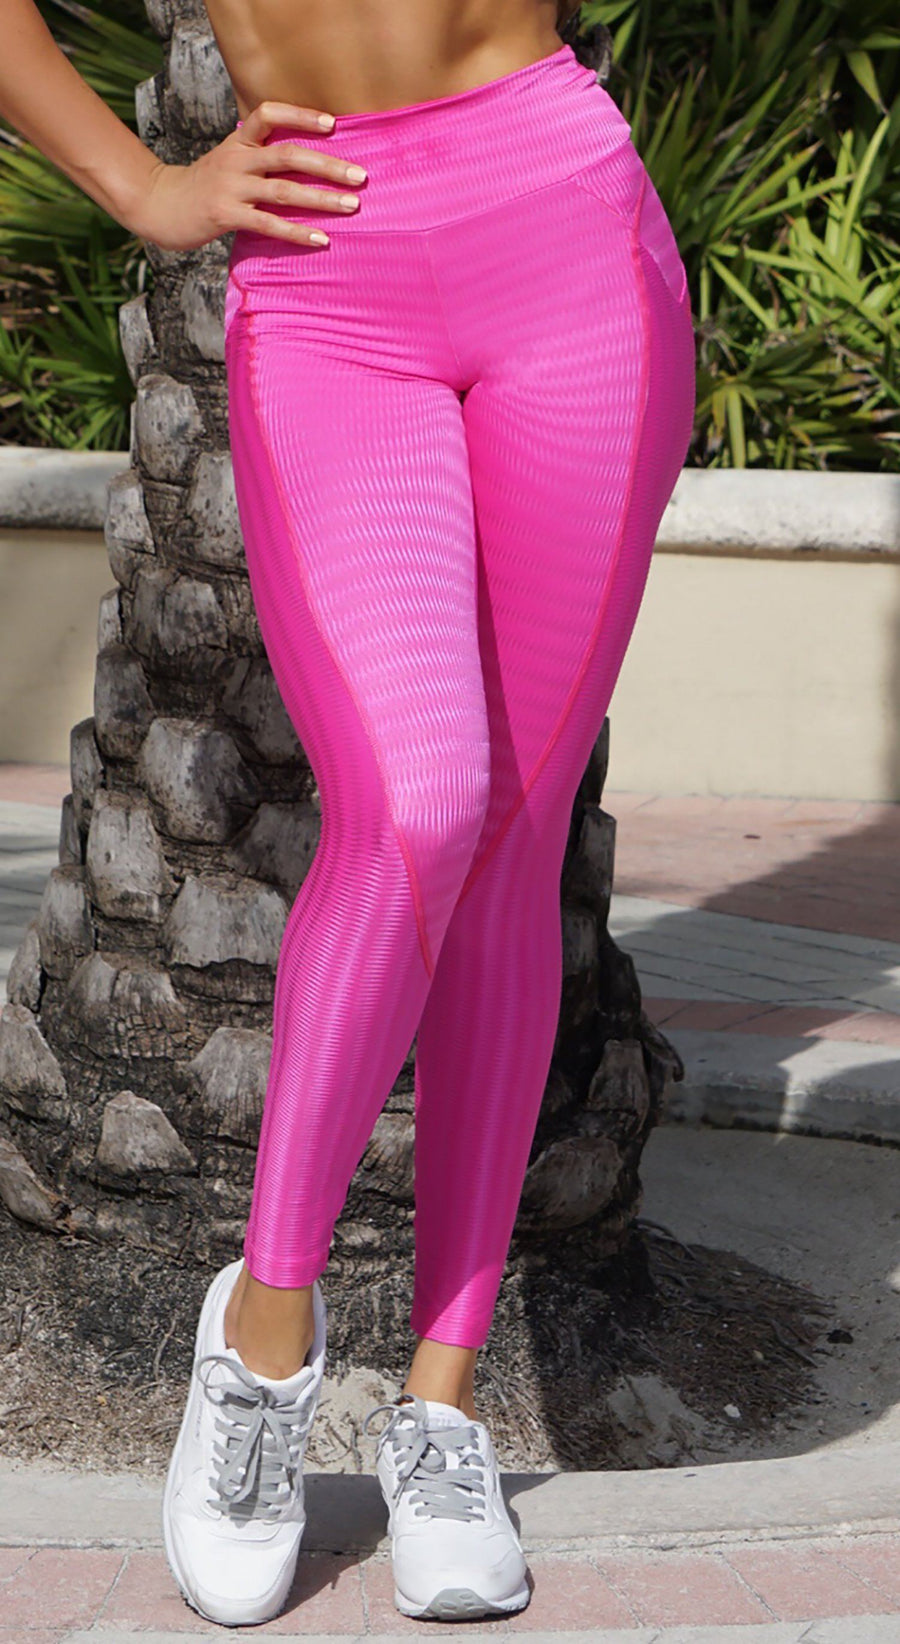 Brazilian Workout Legging - Push Up Butt Lift Hot Pink